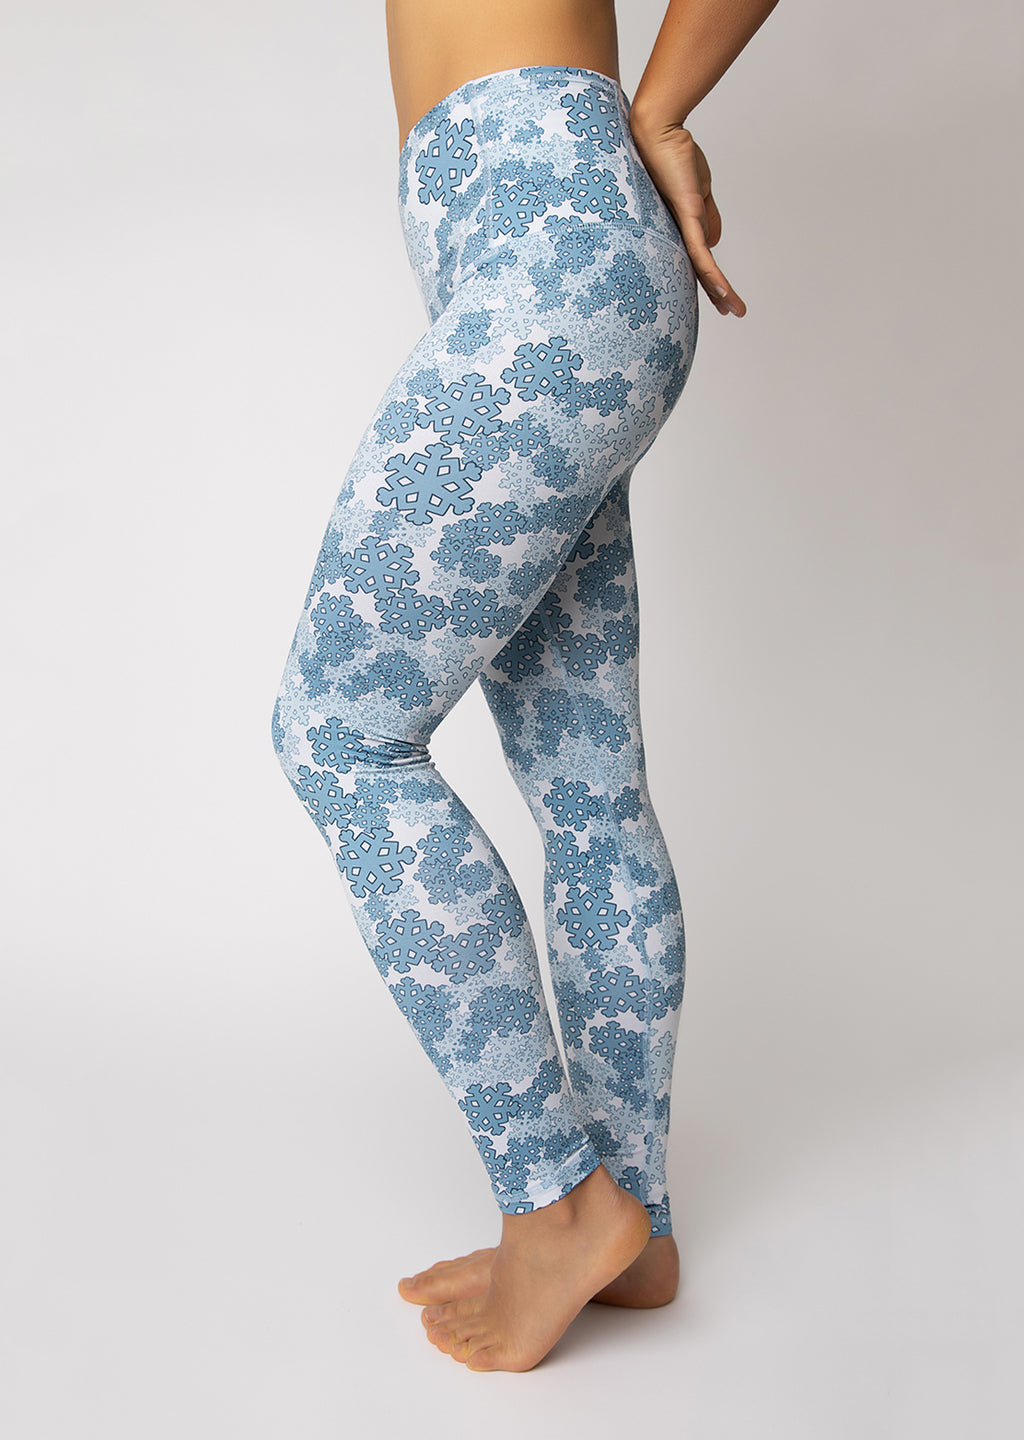 """Winter Sprinkles"" Basecamp Leggings - arriving mid December"